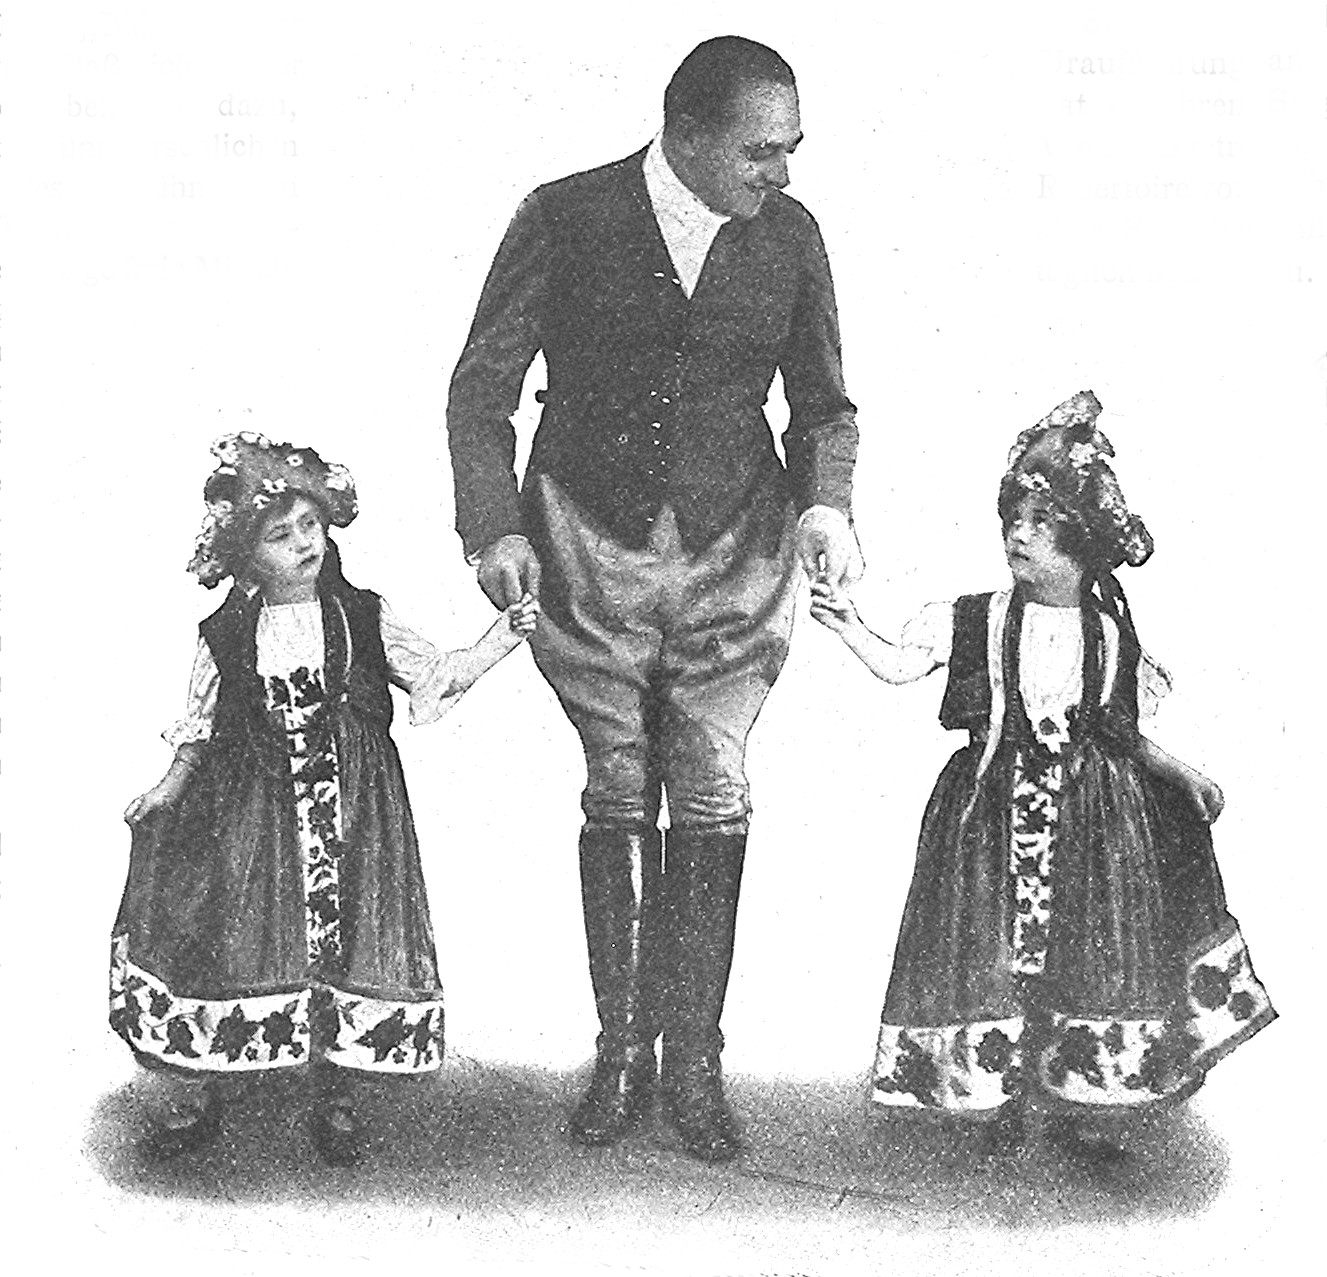 Hubert Marschka as Tassilo with the children of act 1, back in 1924. (Photo: Archive Operetta Research Center)